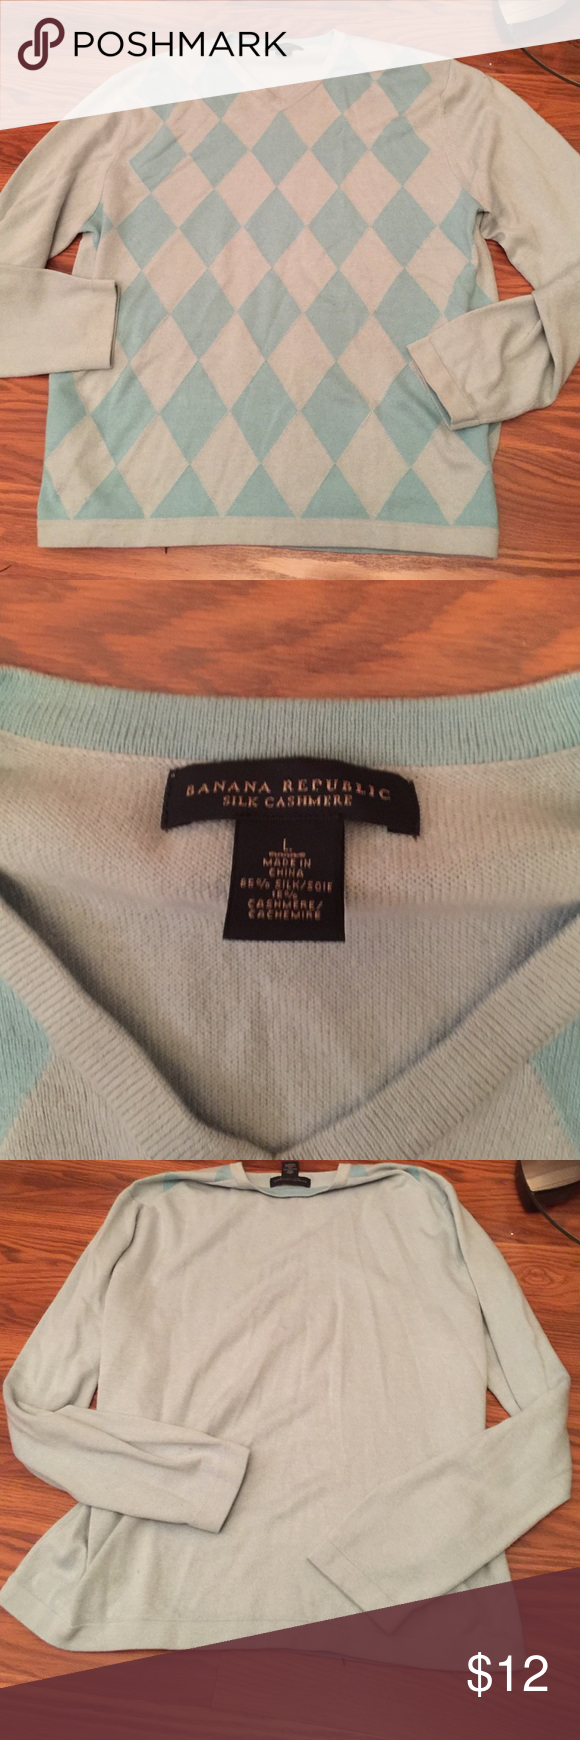 Men's sweater Worn only a few times. No holes or peels Banana Republic Sweaters Crew & Scoop Necks